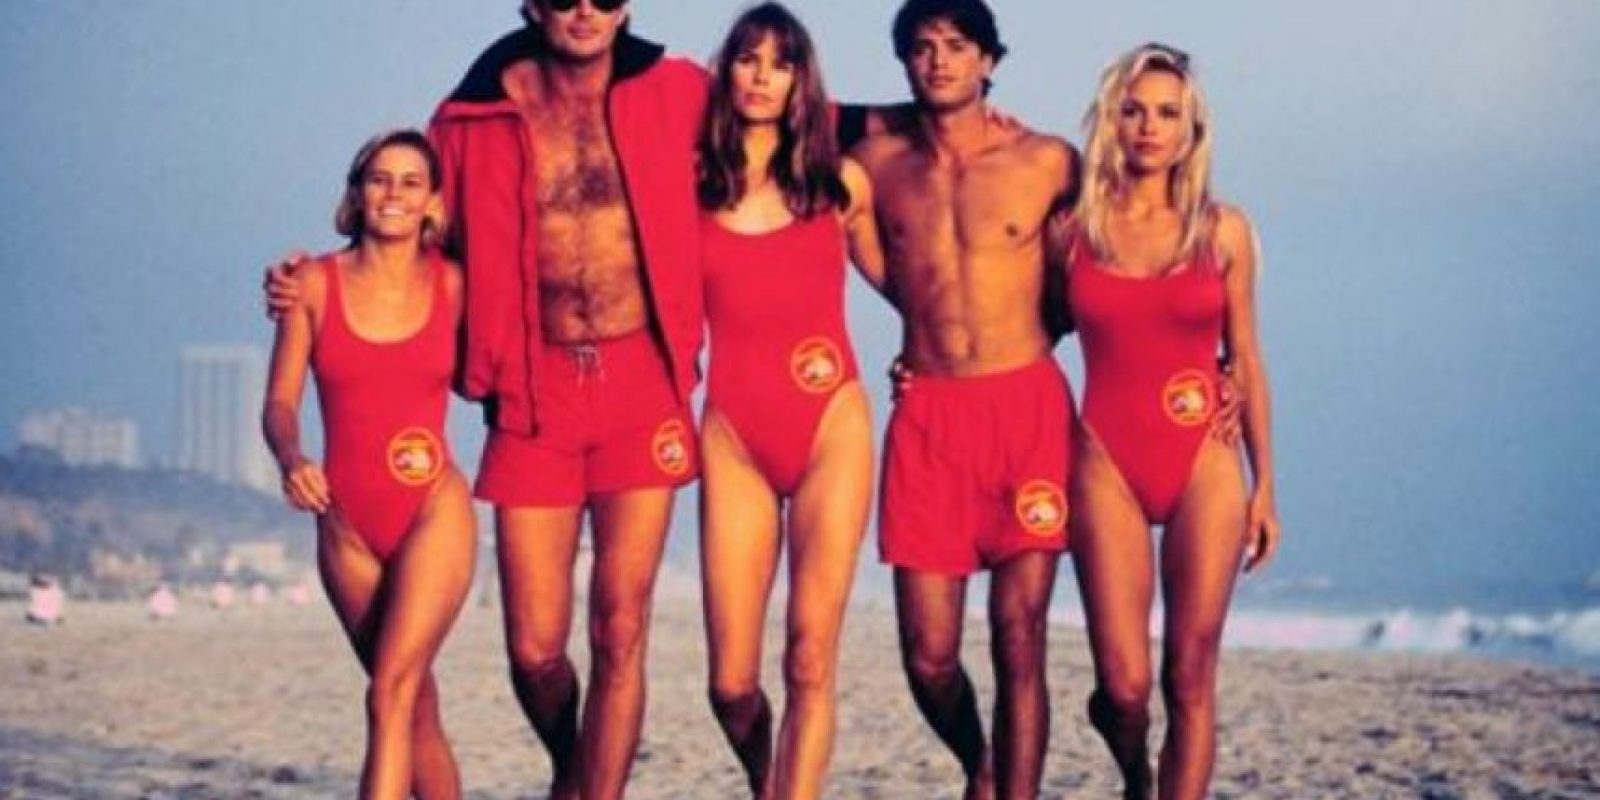 Foto: Instagram/@Baywatch